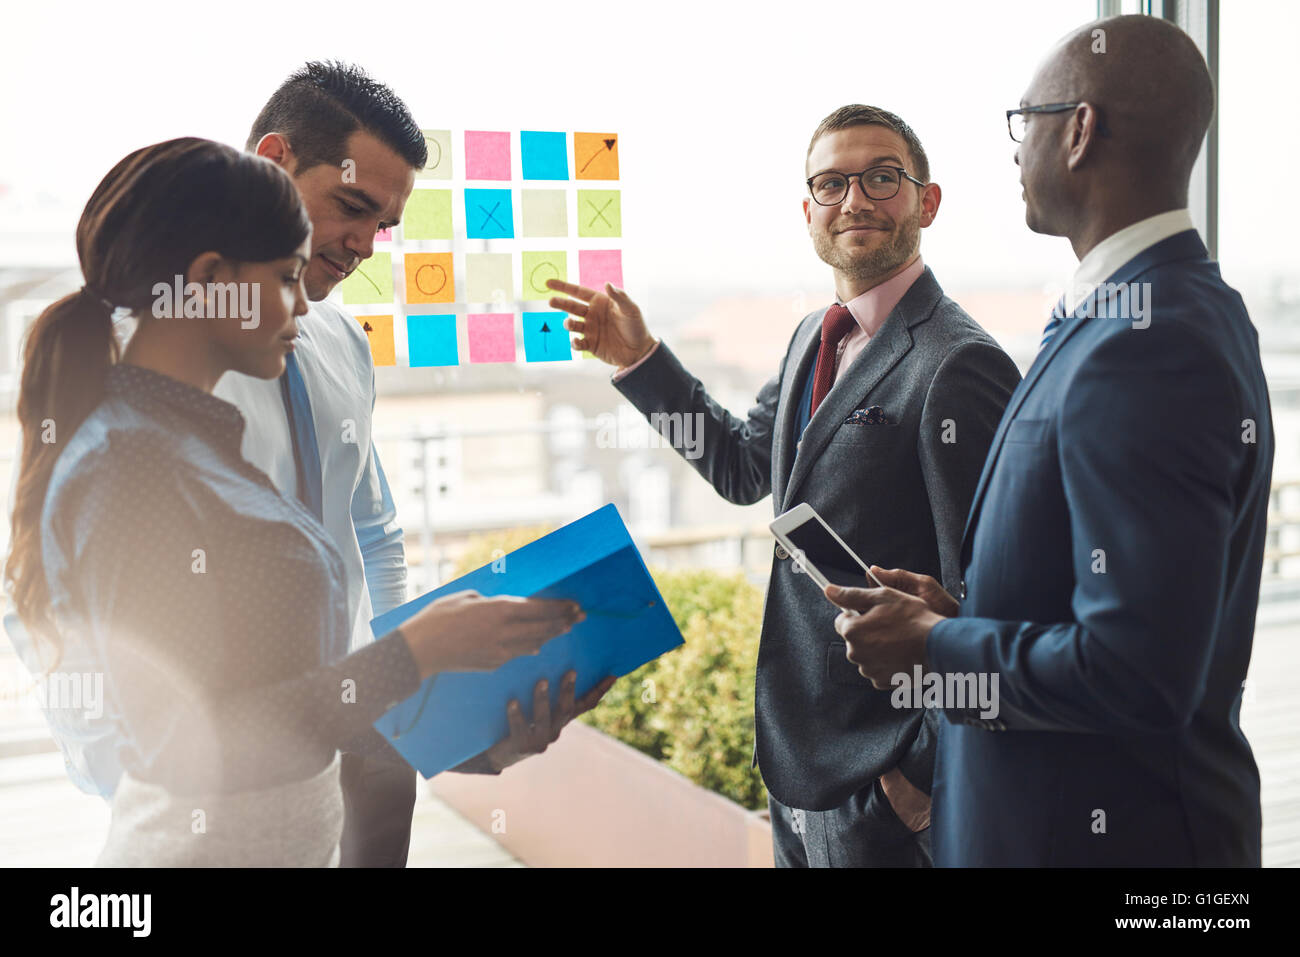 Young group of diverse business people in conference meeting using colorful sticky notes to organize ideas on large - Stock Image